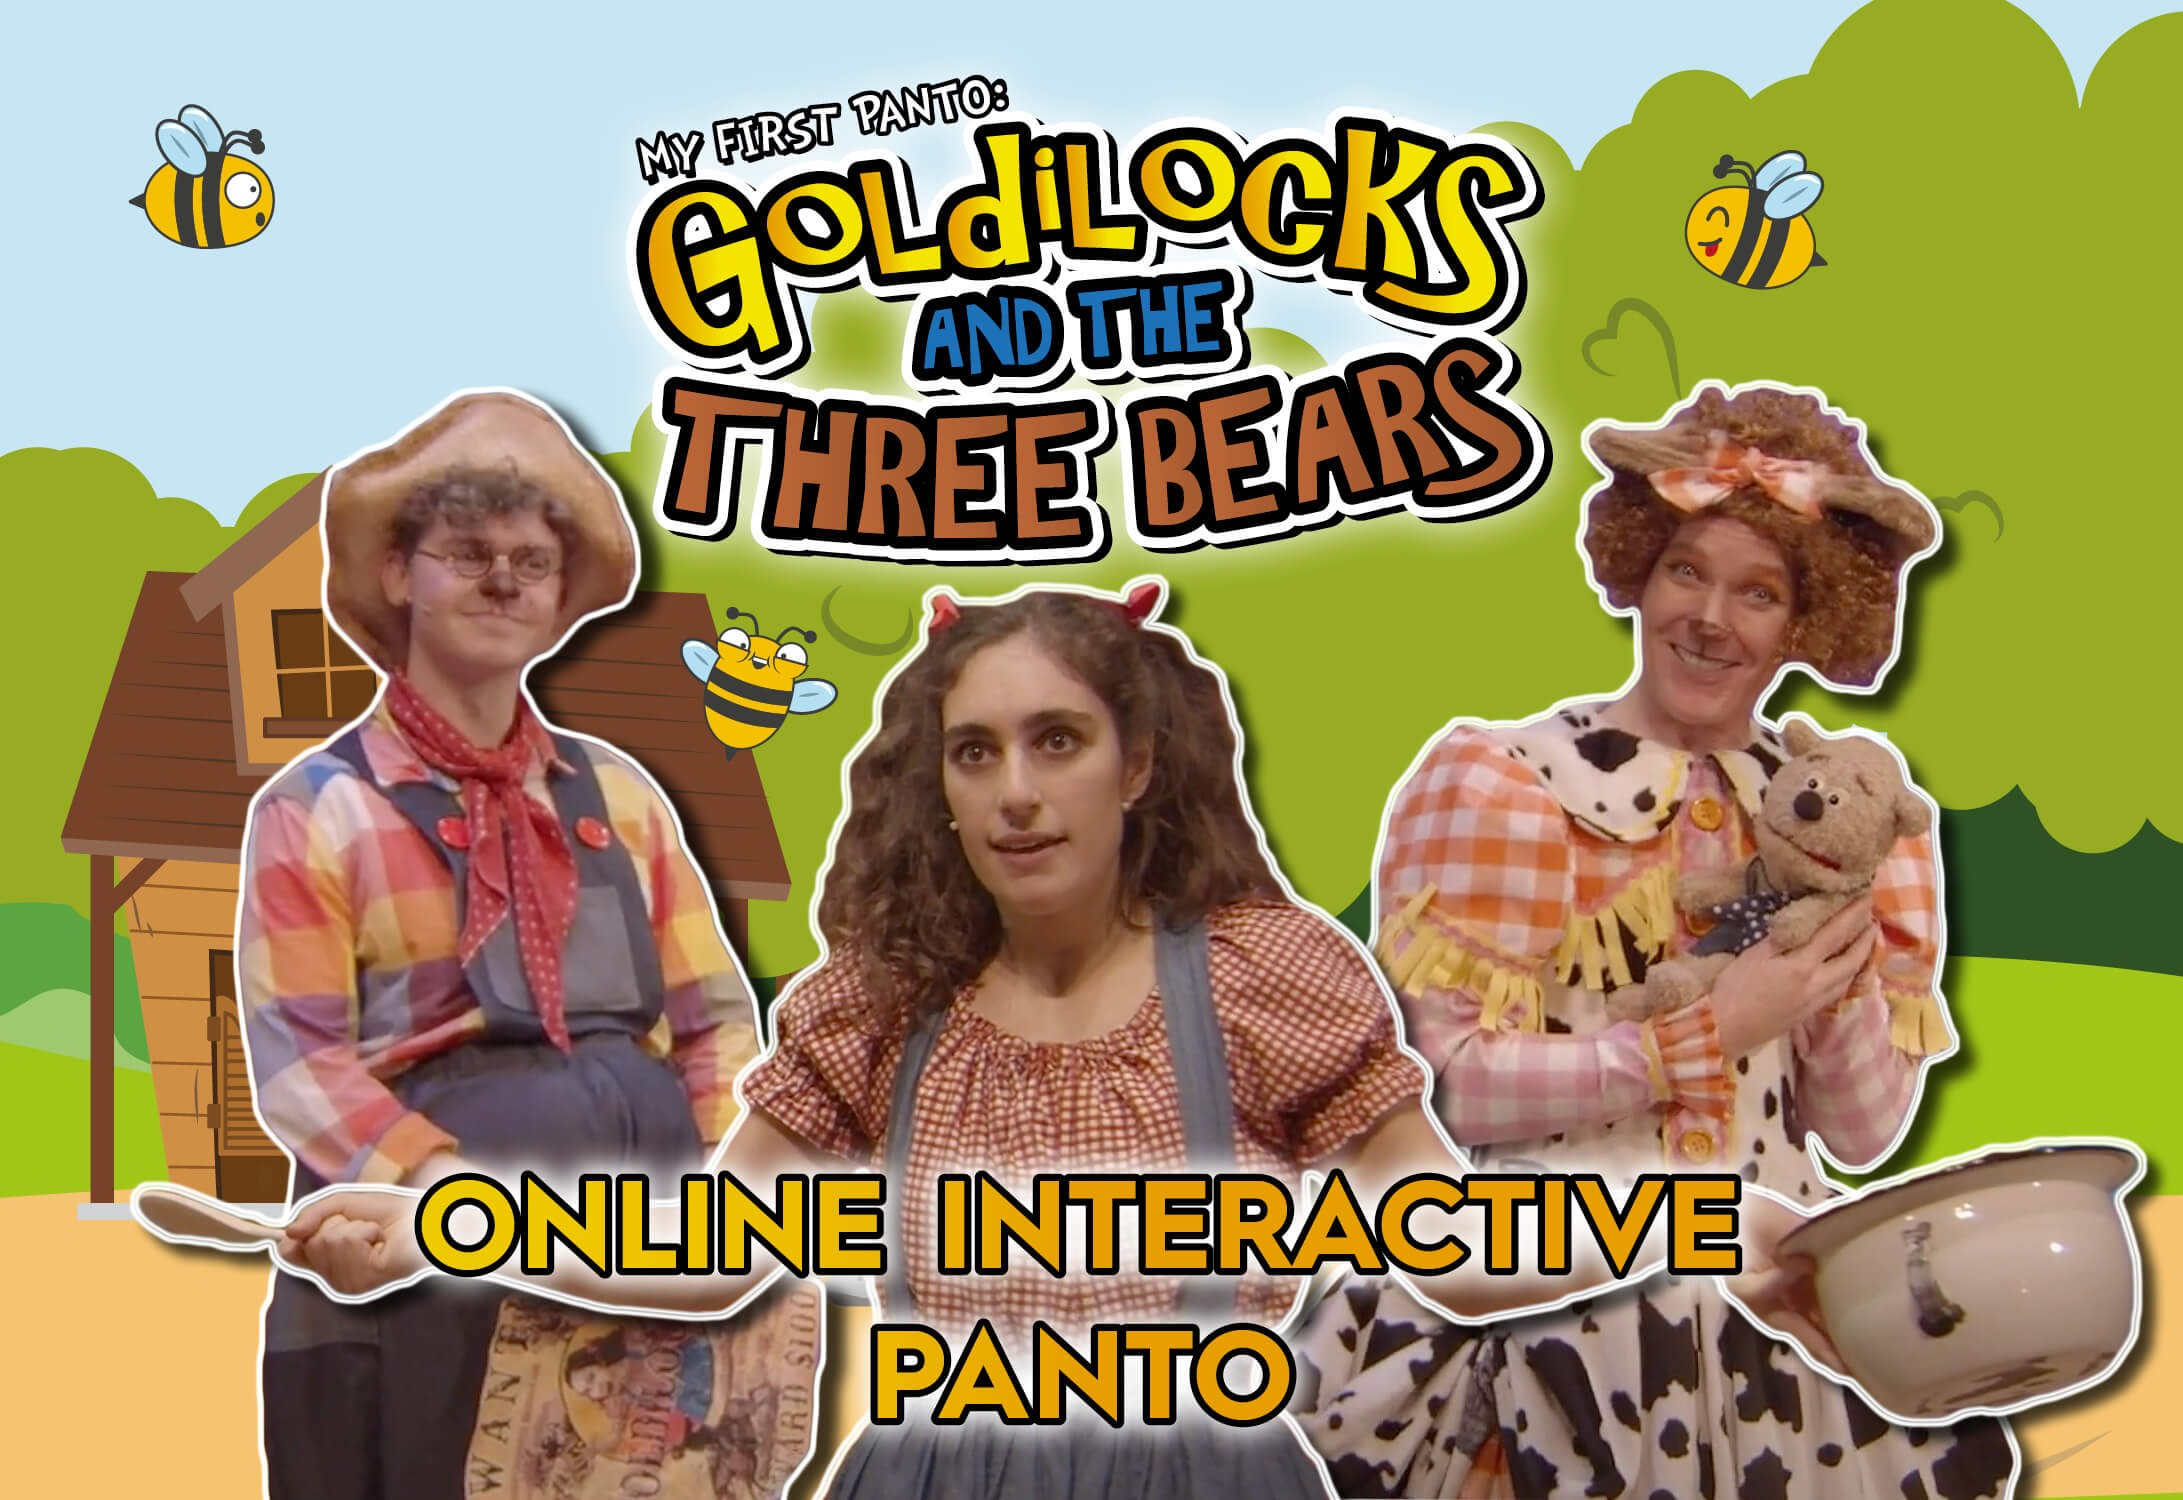 My First Panto: Goldilocks and the Three Bears